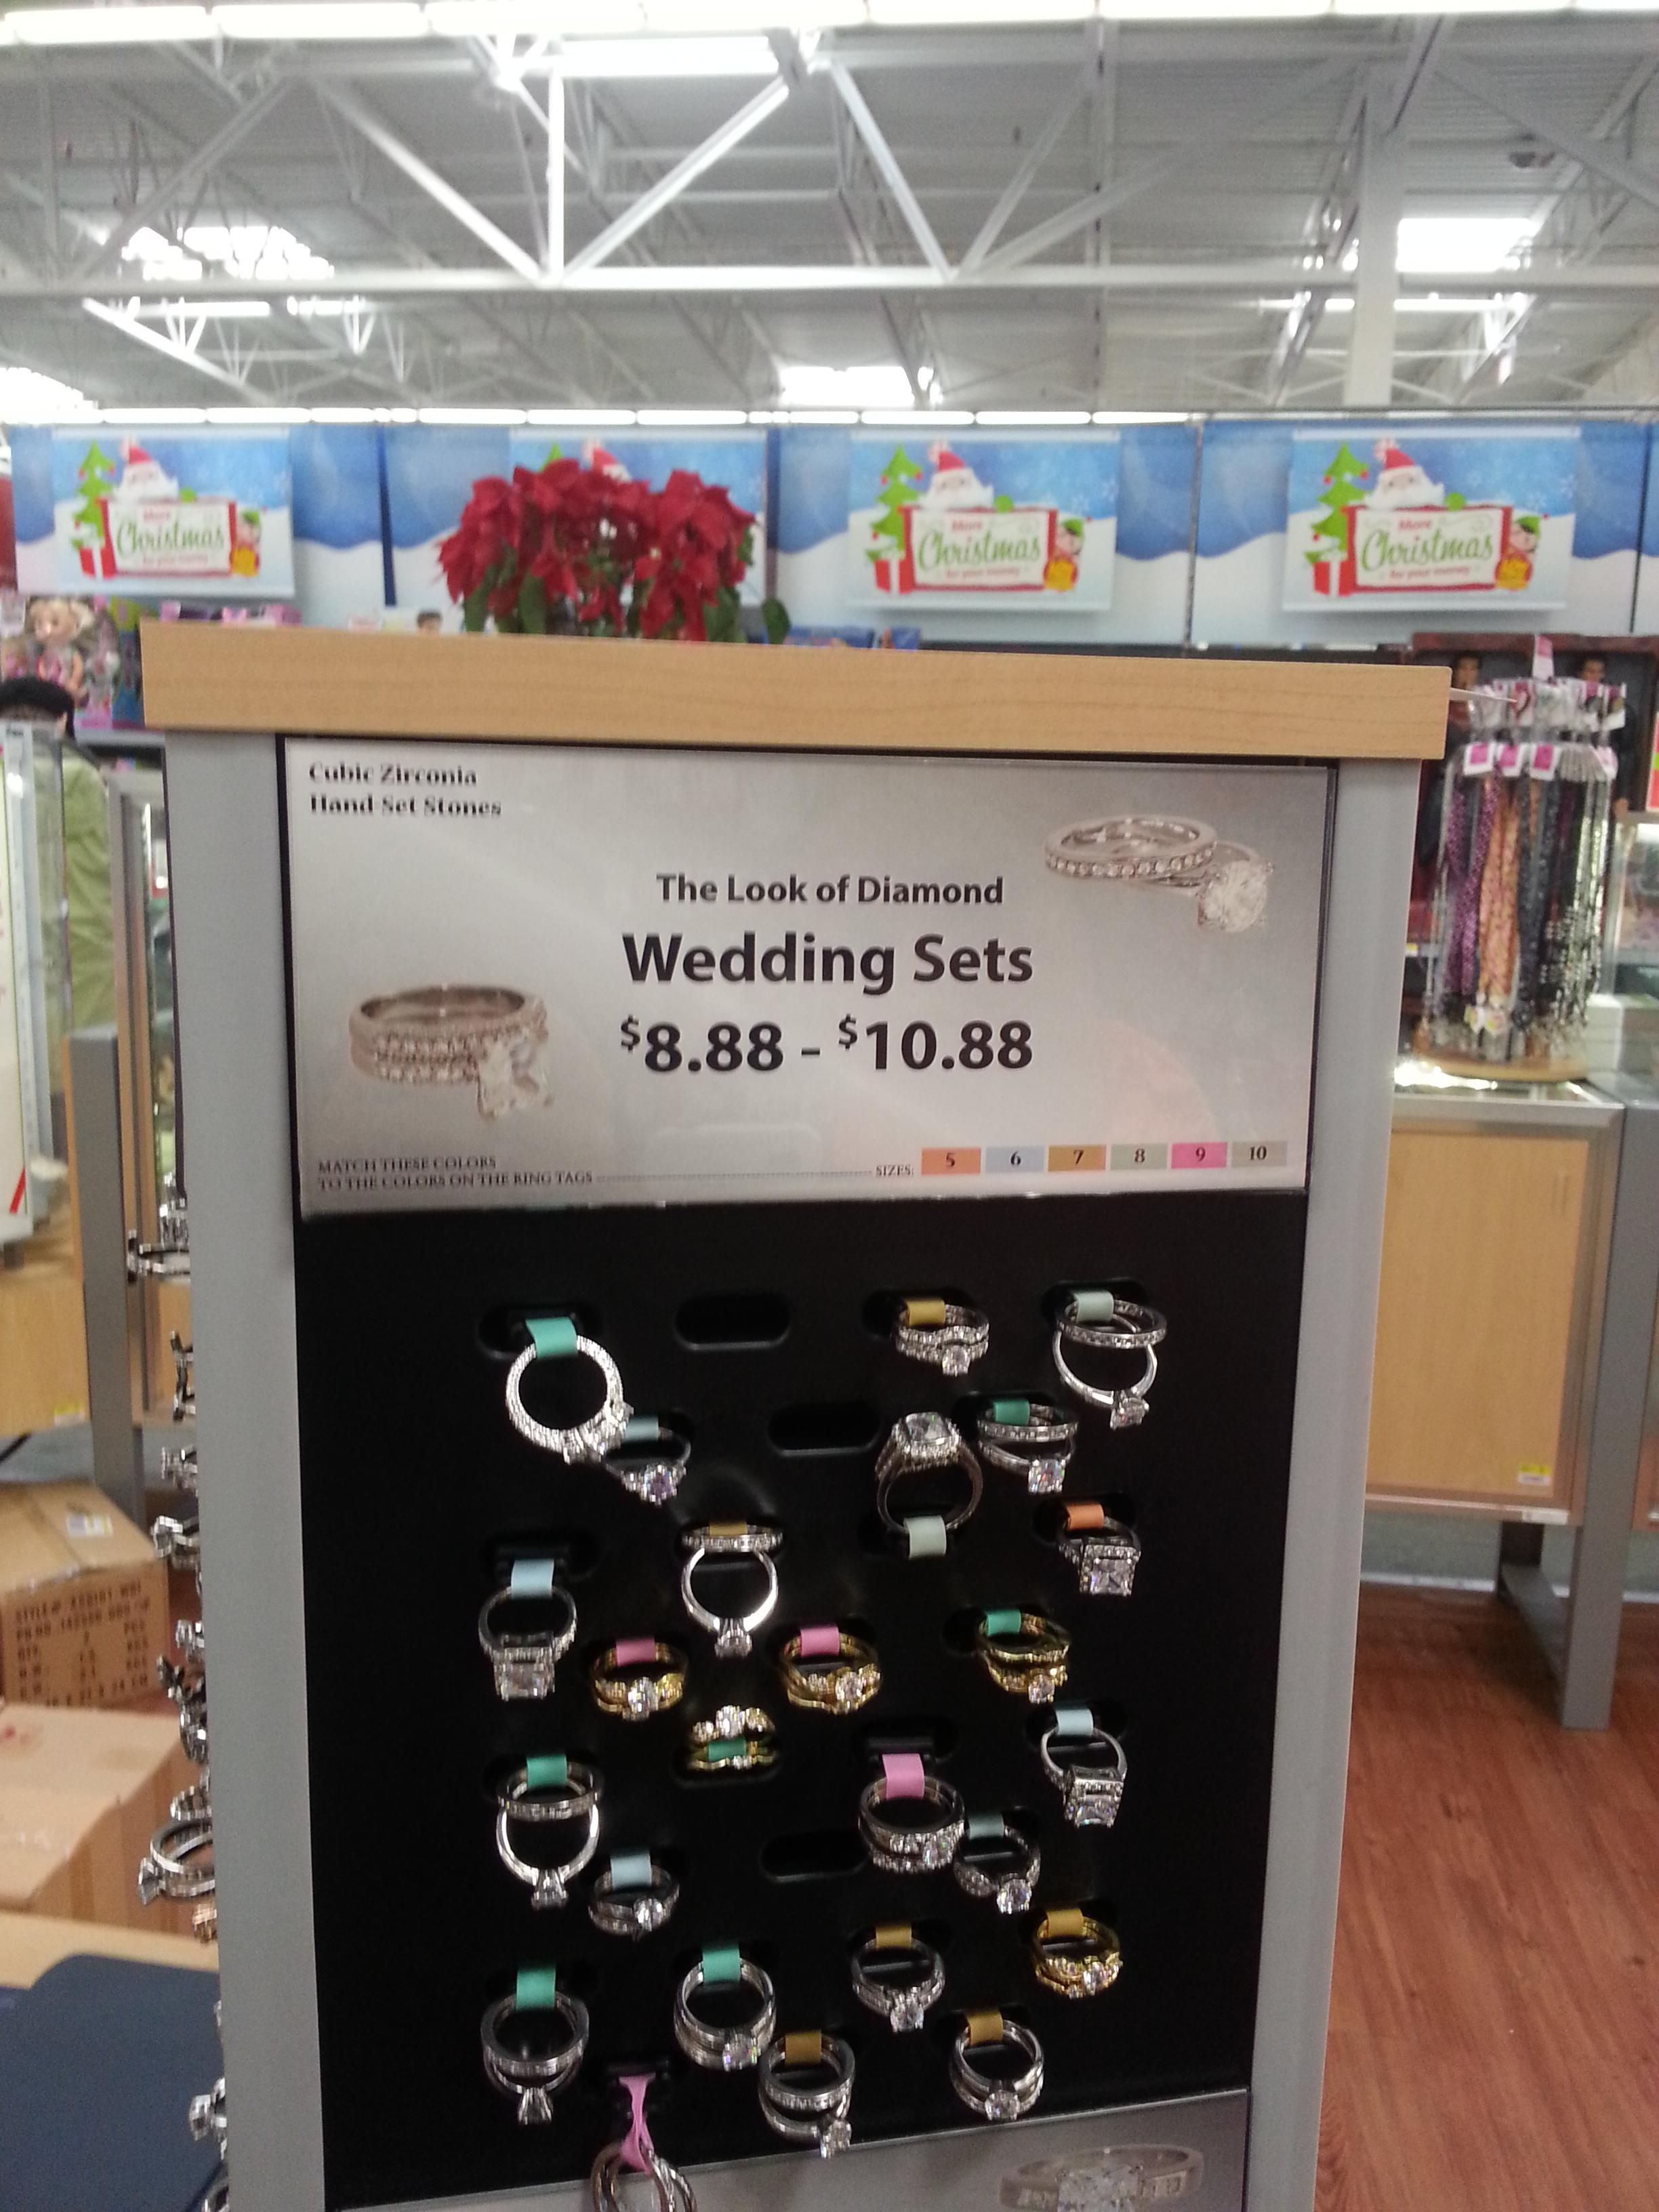 Walmart is setting the bar pretty high imgur jessie people of also best rootin  tootin shootin weddin images fanny pics rh pinterest